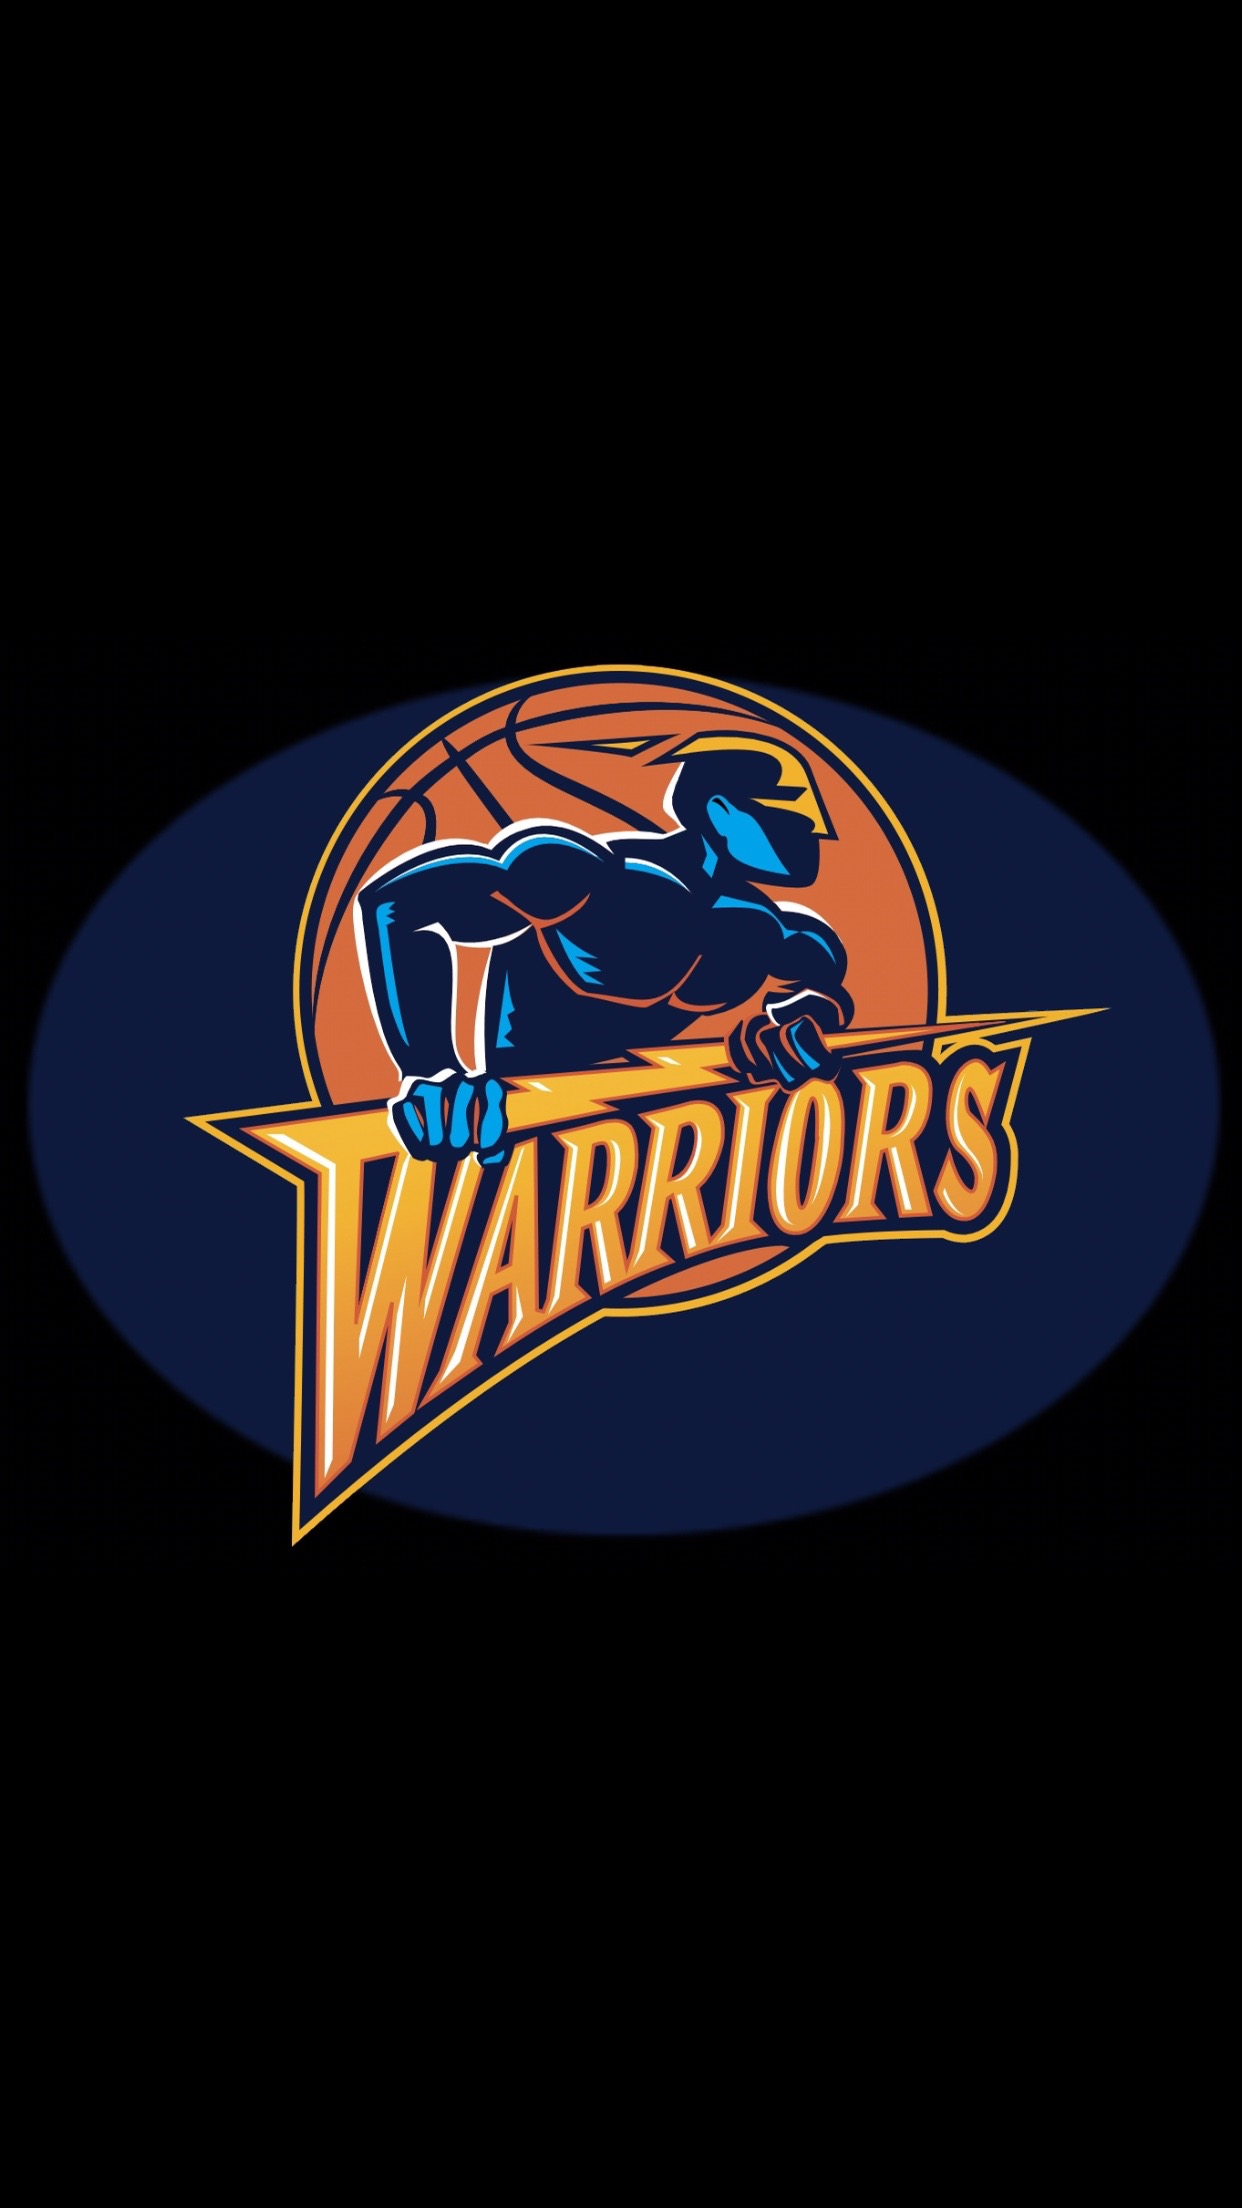 Nba Warriors Wallpaper For Iphone X 8 7 6 Free Download On